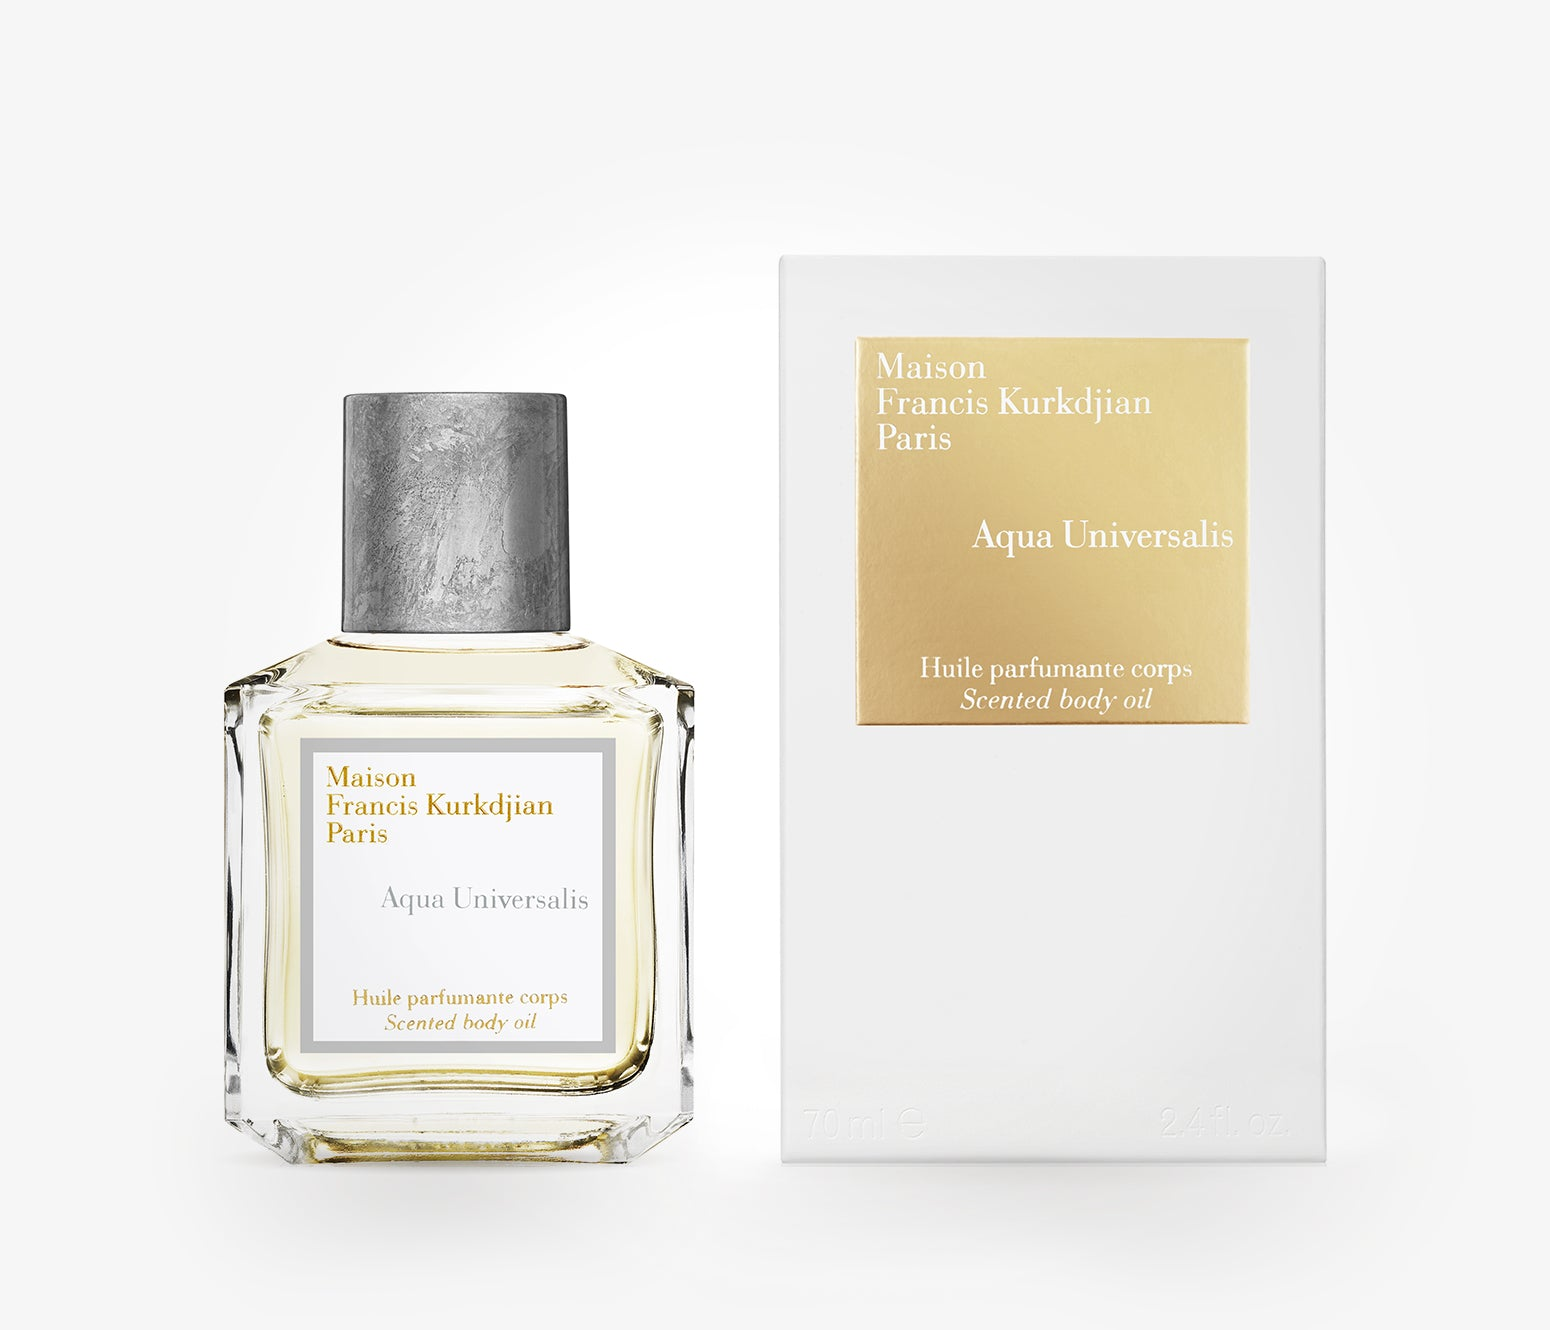 Maison Francis Kurkdjian - Aqua Universalis Scented Body Oil - 70ml - RWC001 - product image - Body Oil - Les Senteurs